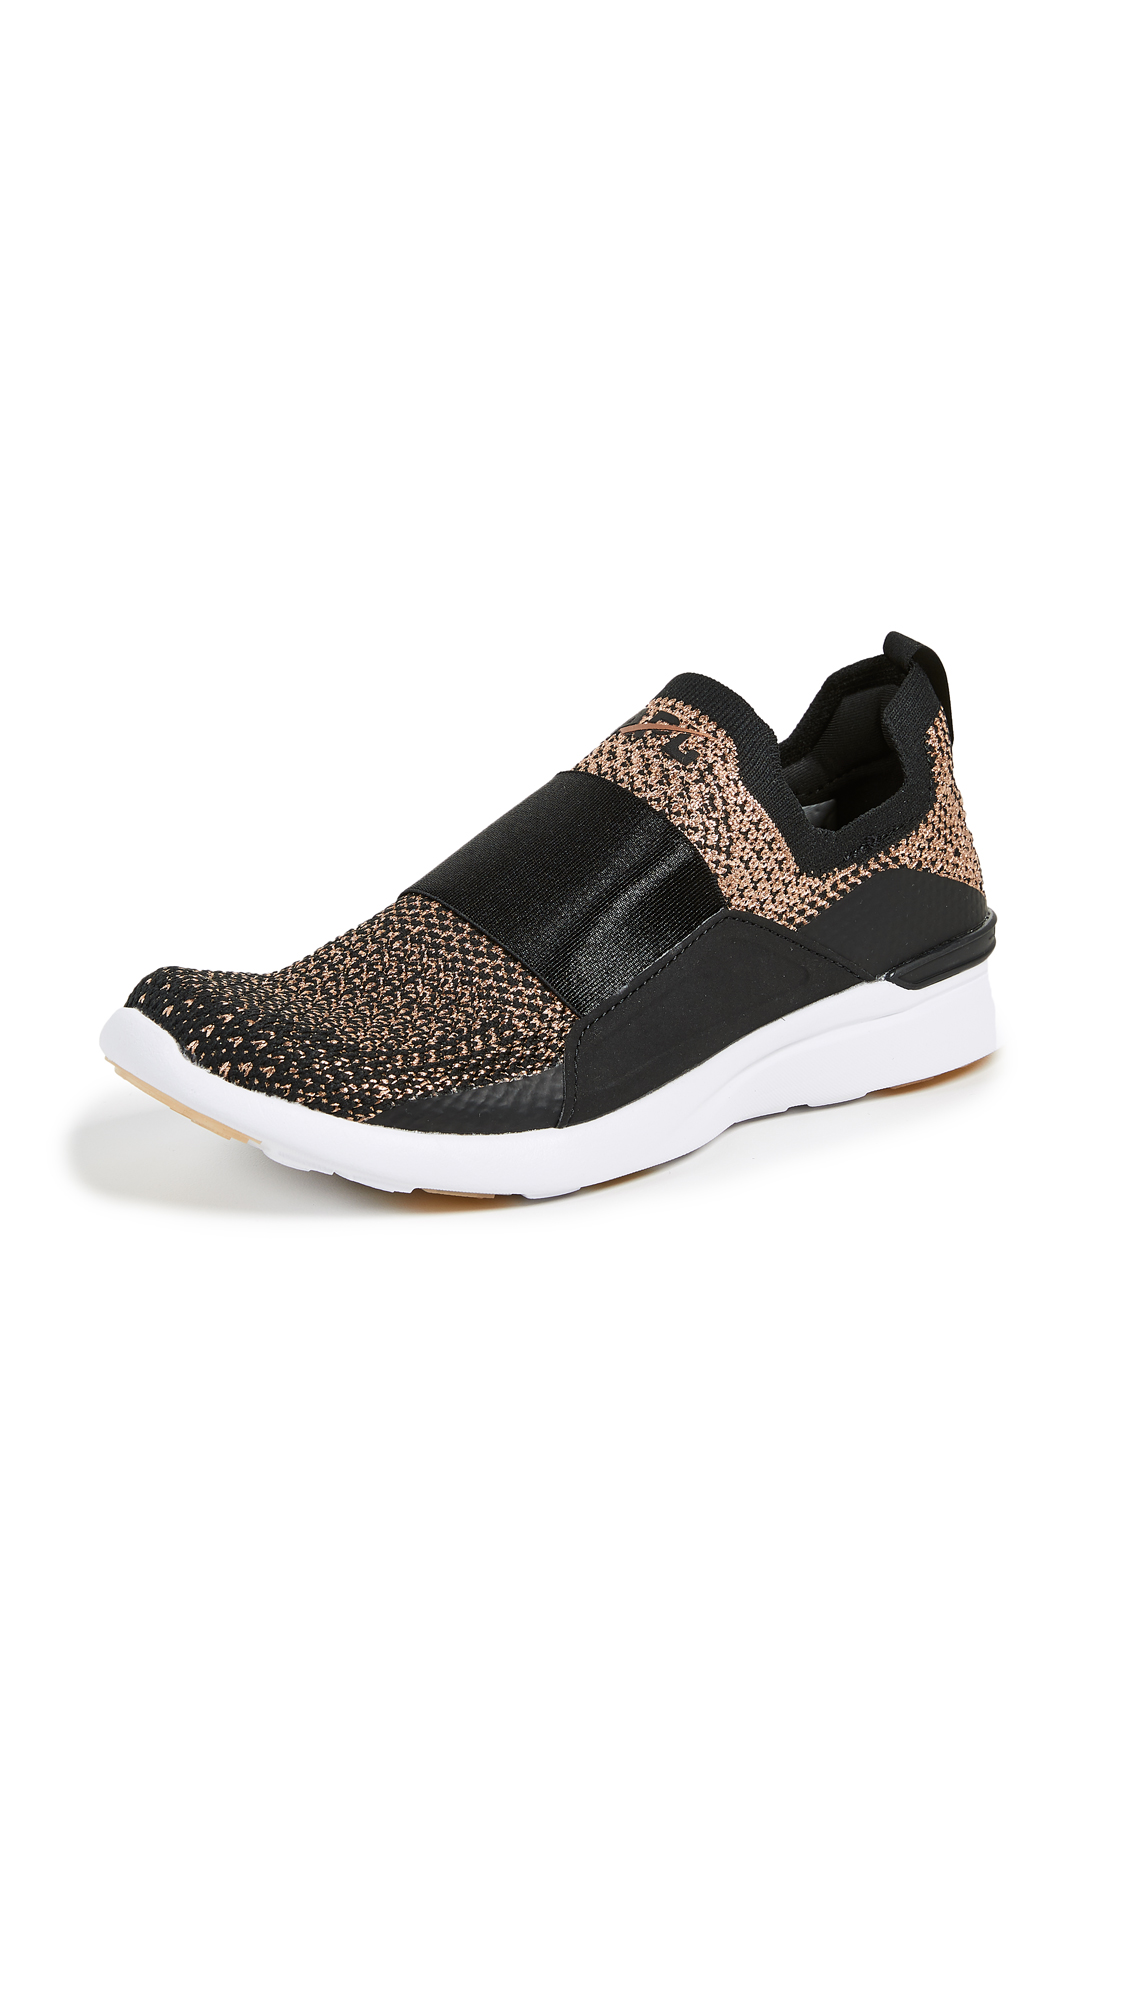 APL: Athletic Propulsion Labs TechLoom Bliss Sneakers - Black/Rose Gold/White